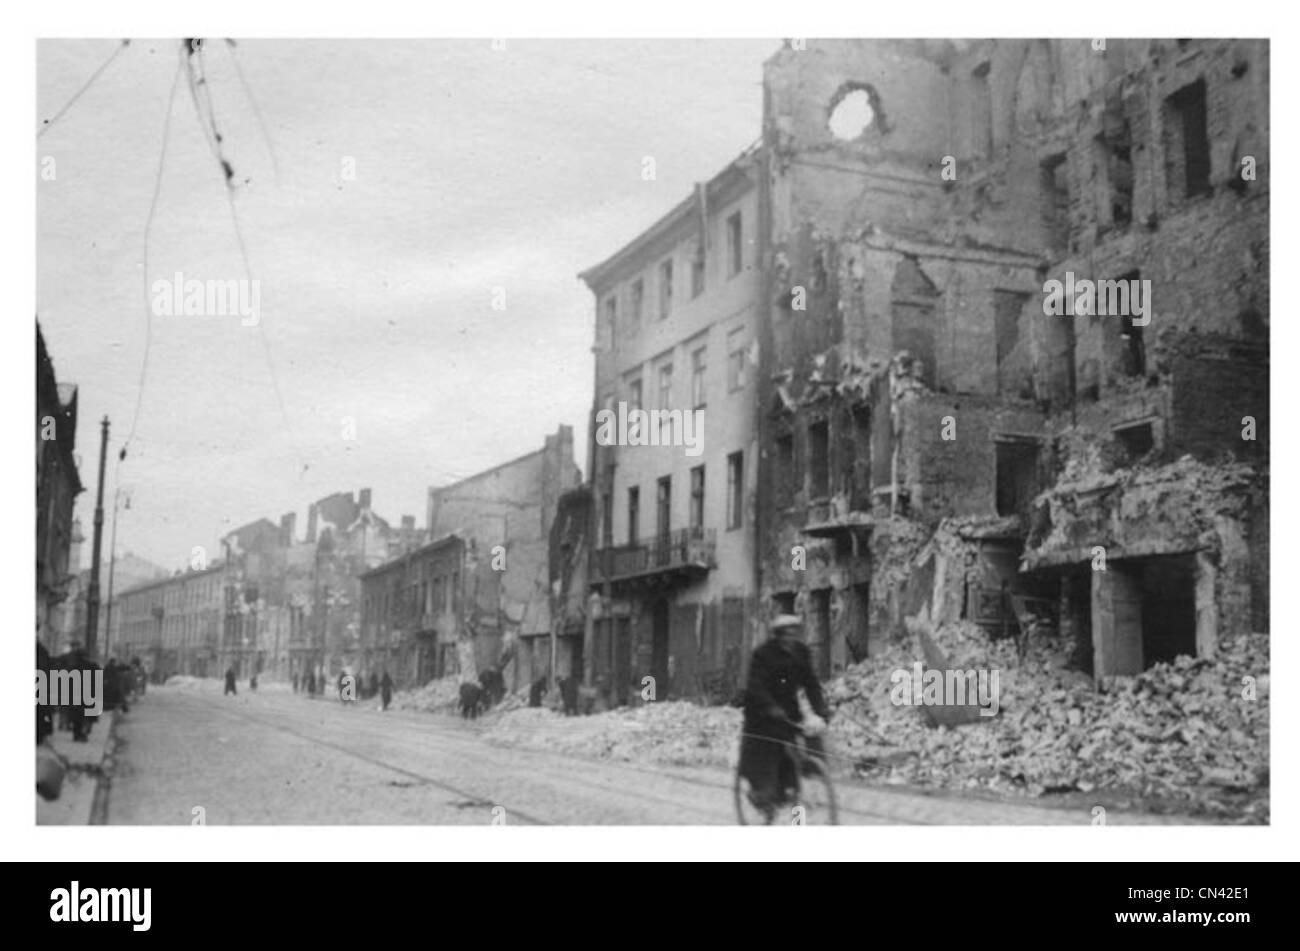 https://c7.alamy.com/comp/CN42E1/warsaw-poland-during-the-second-world-war-CN42E1.jpg